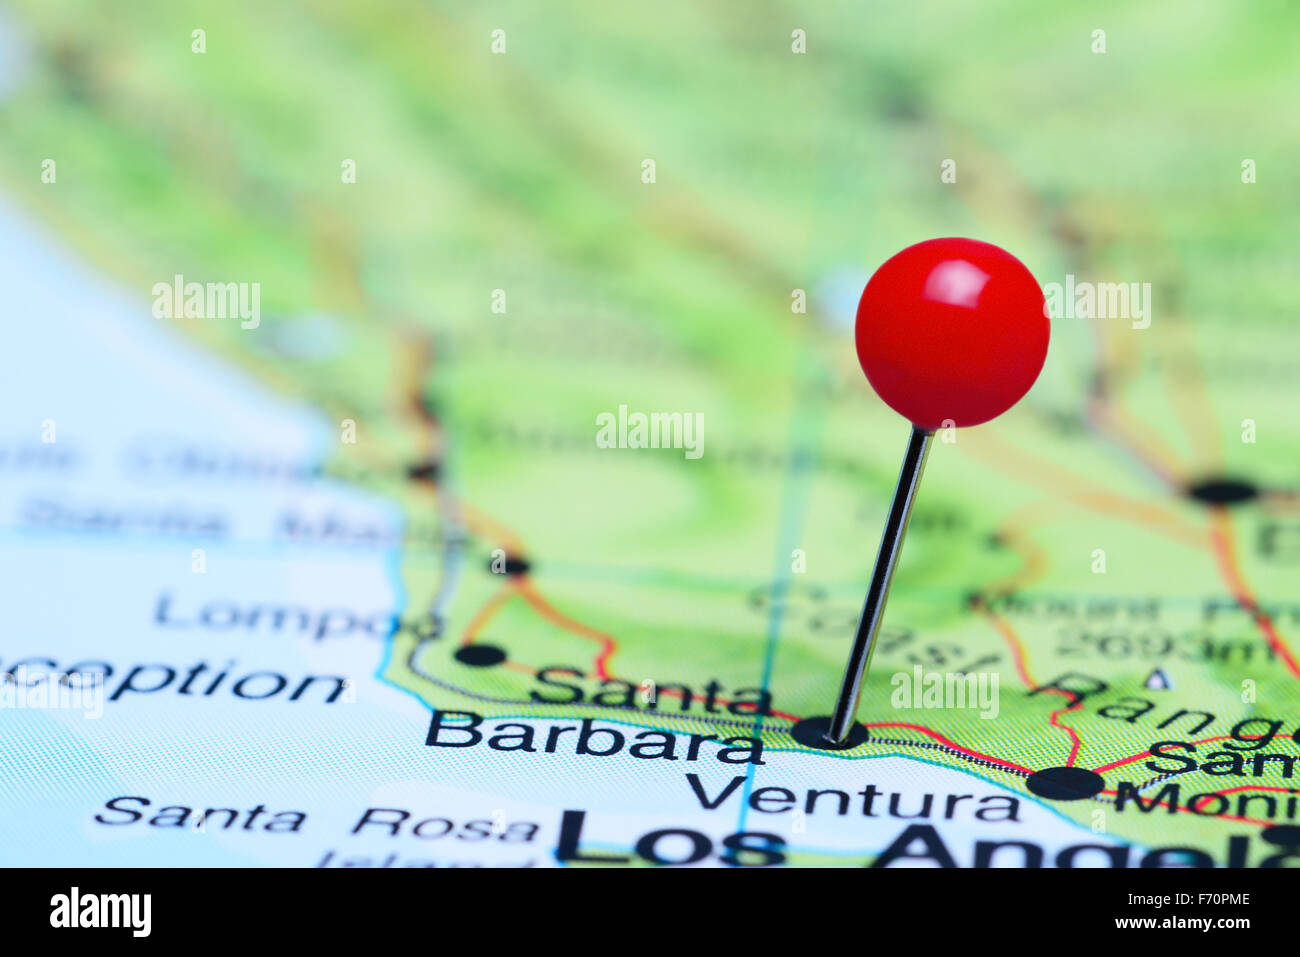 Santa Barbara Pinned On A Map Of USA Stock Photo Royalty Free - Santa barbara on us map